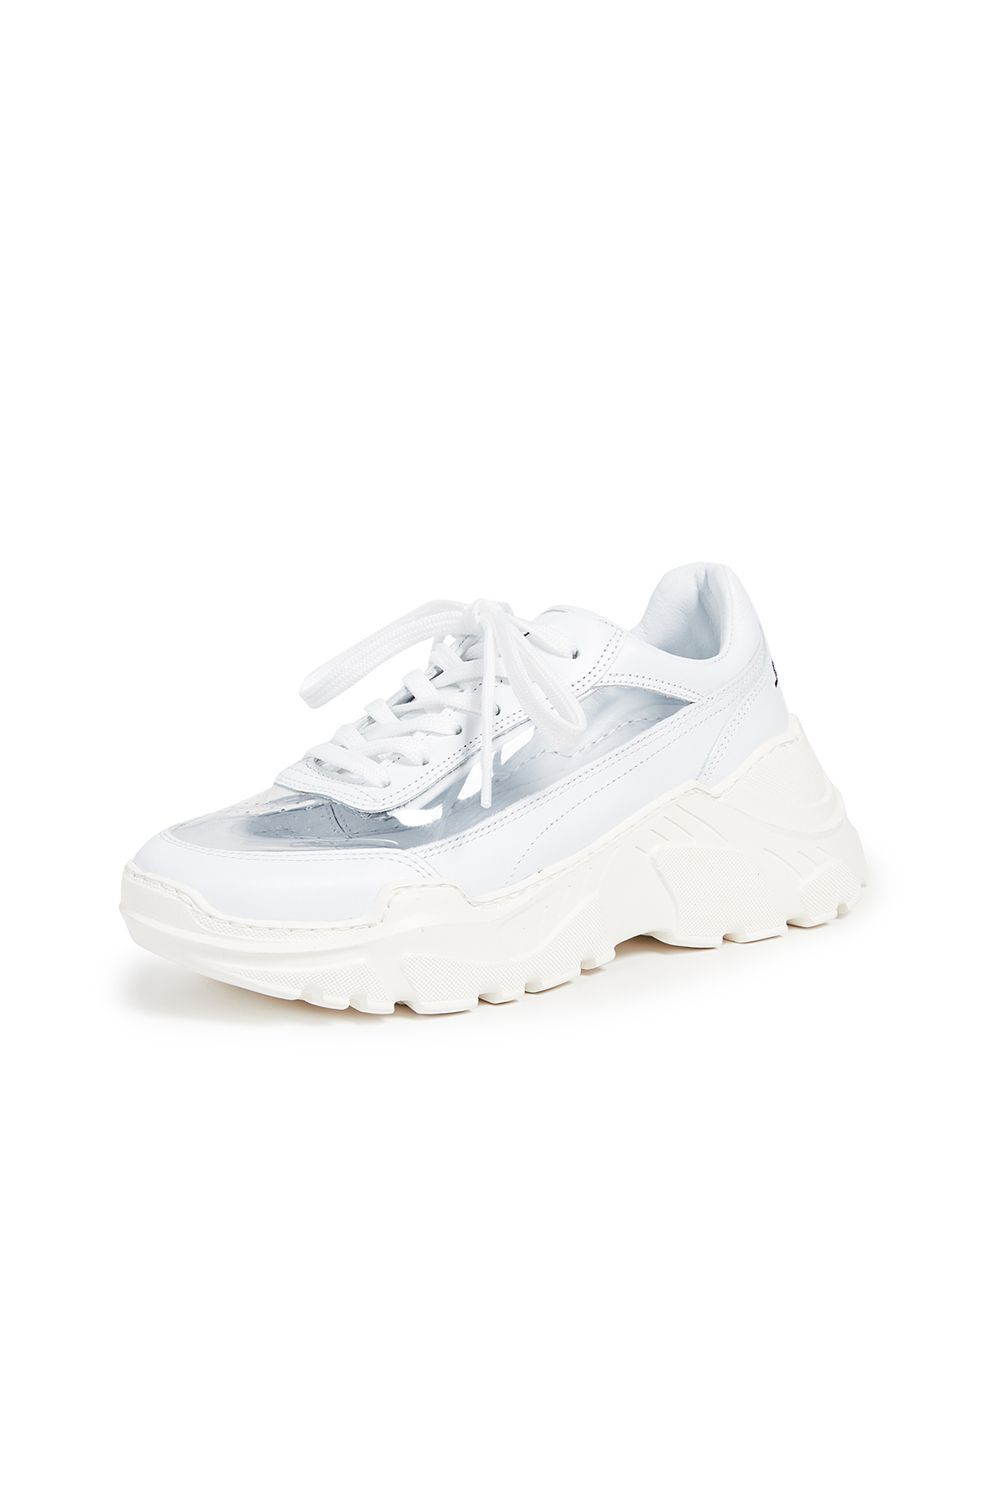 Zenith White PVC Sneakers Joshua Sanders shopbop.com $388.00 SHOP IT It was only a matter of time before someone combined the PVC trend with dad sneakers. This Joshua Sanders pair allows you to show off your springtime socks and presents a cool spin on the chunky sneaker look.